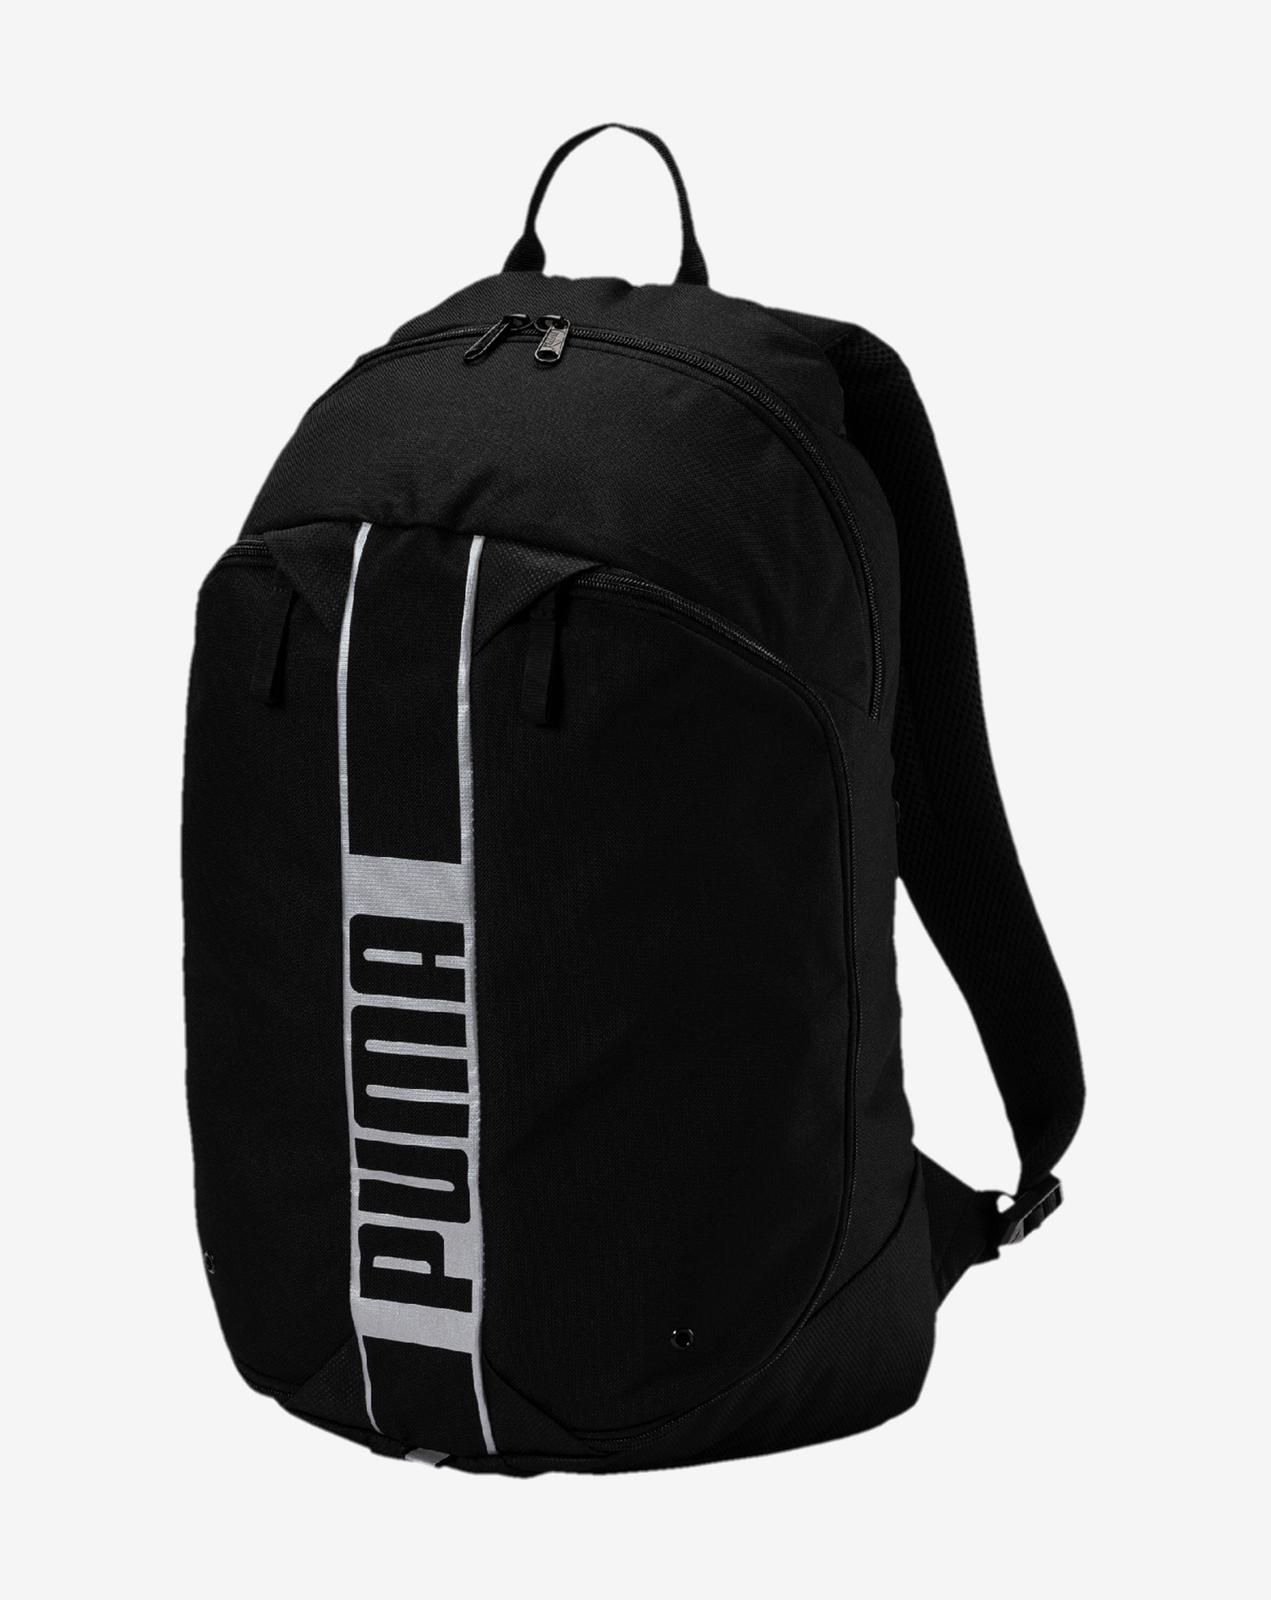 PUMA Deck Backpack II Puma Black